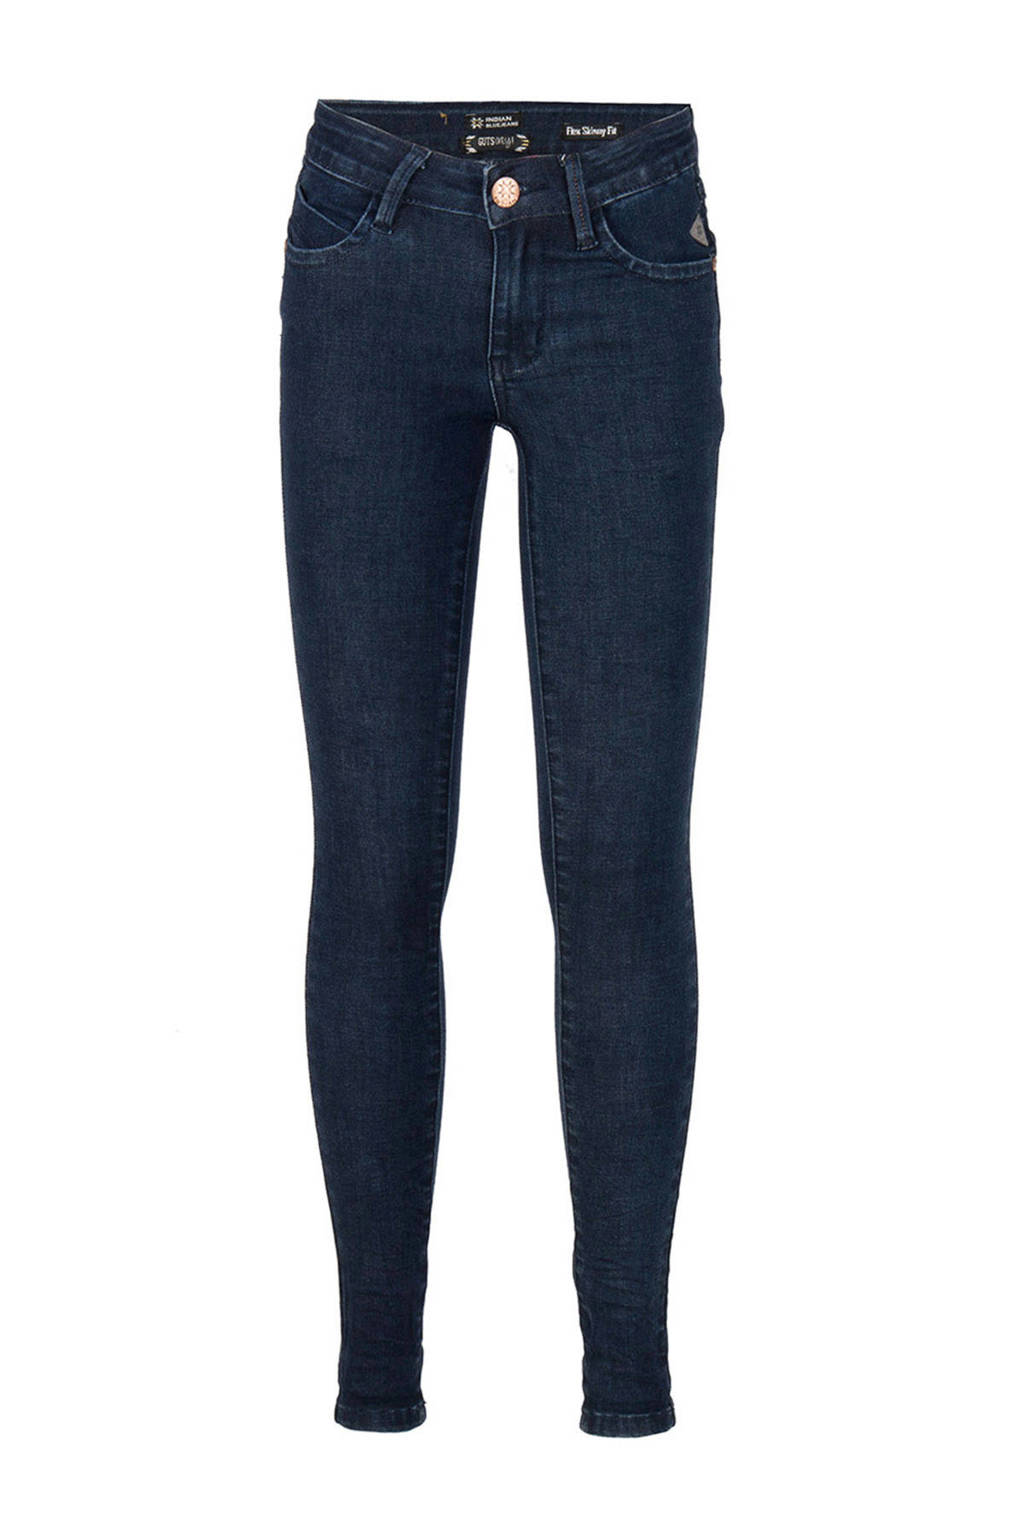 Indian Blue Jeans skinny jeans Jill flex dark denim, Dark denim